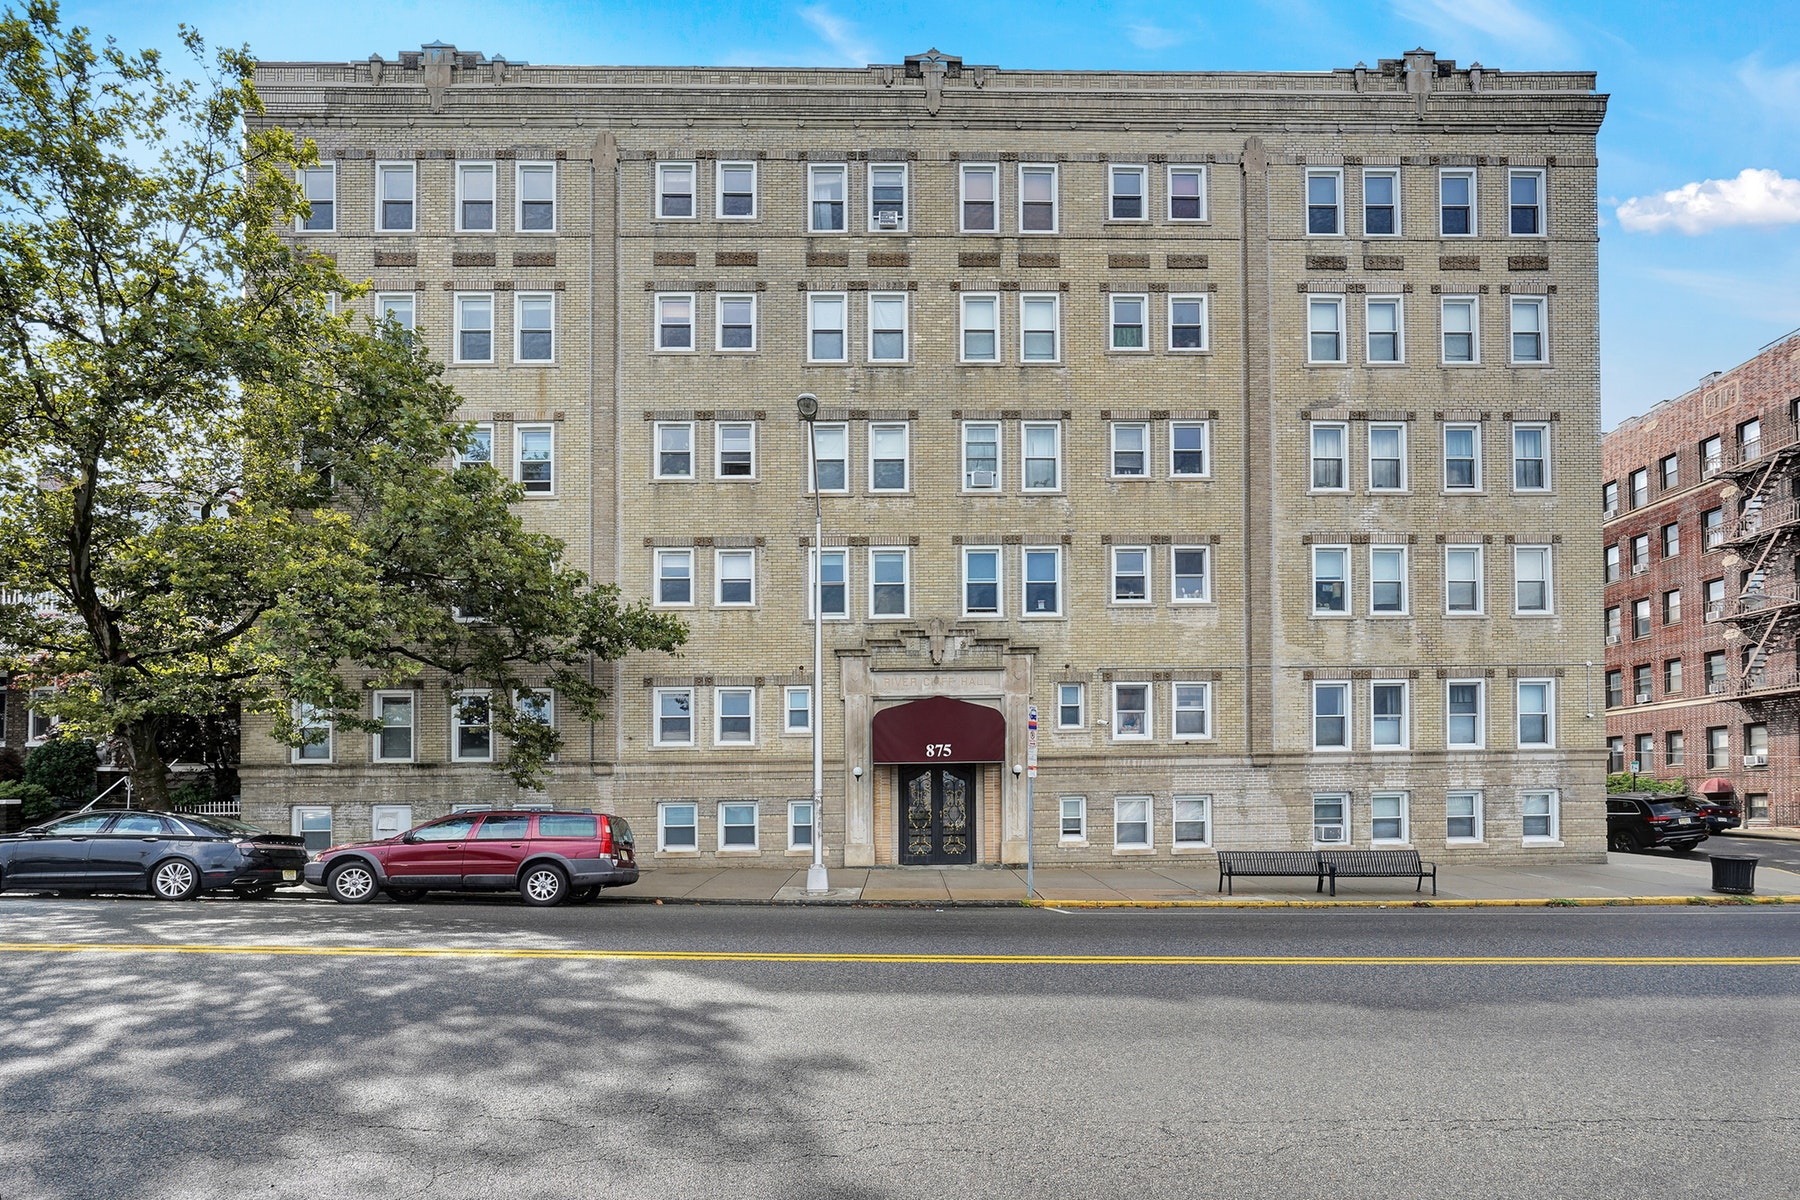 Co-op Properties for Sale at Rivercliff Hall Cooperatives 875 Boulevard East #41, Weehawken, New Jersey 07086 United States